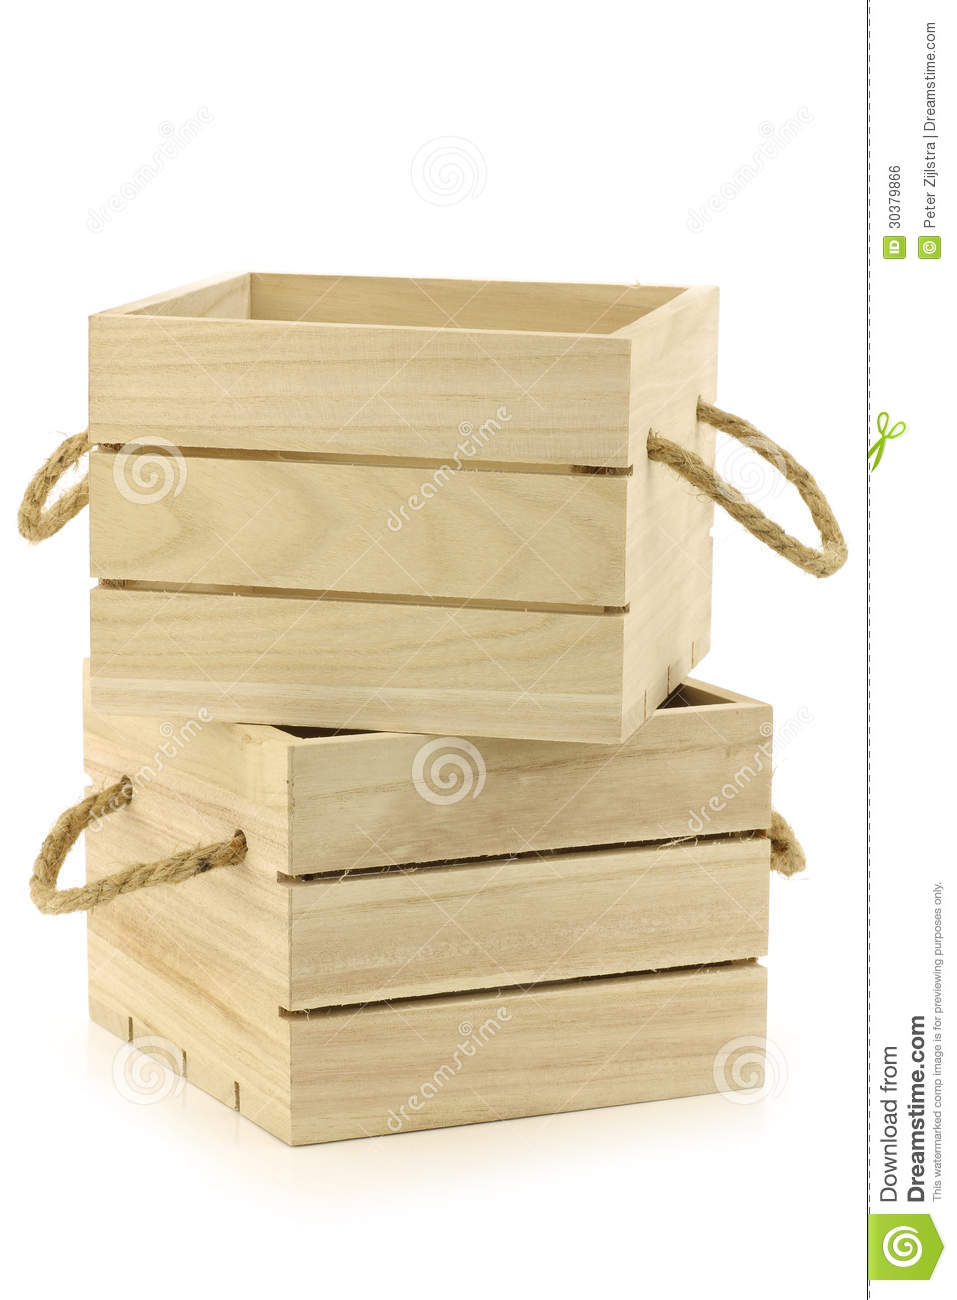 Wooden crates with rope handles royalty free stock image for Where to buy old crates